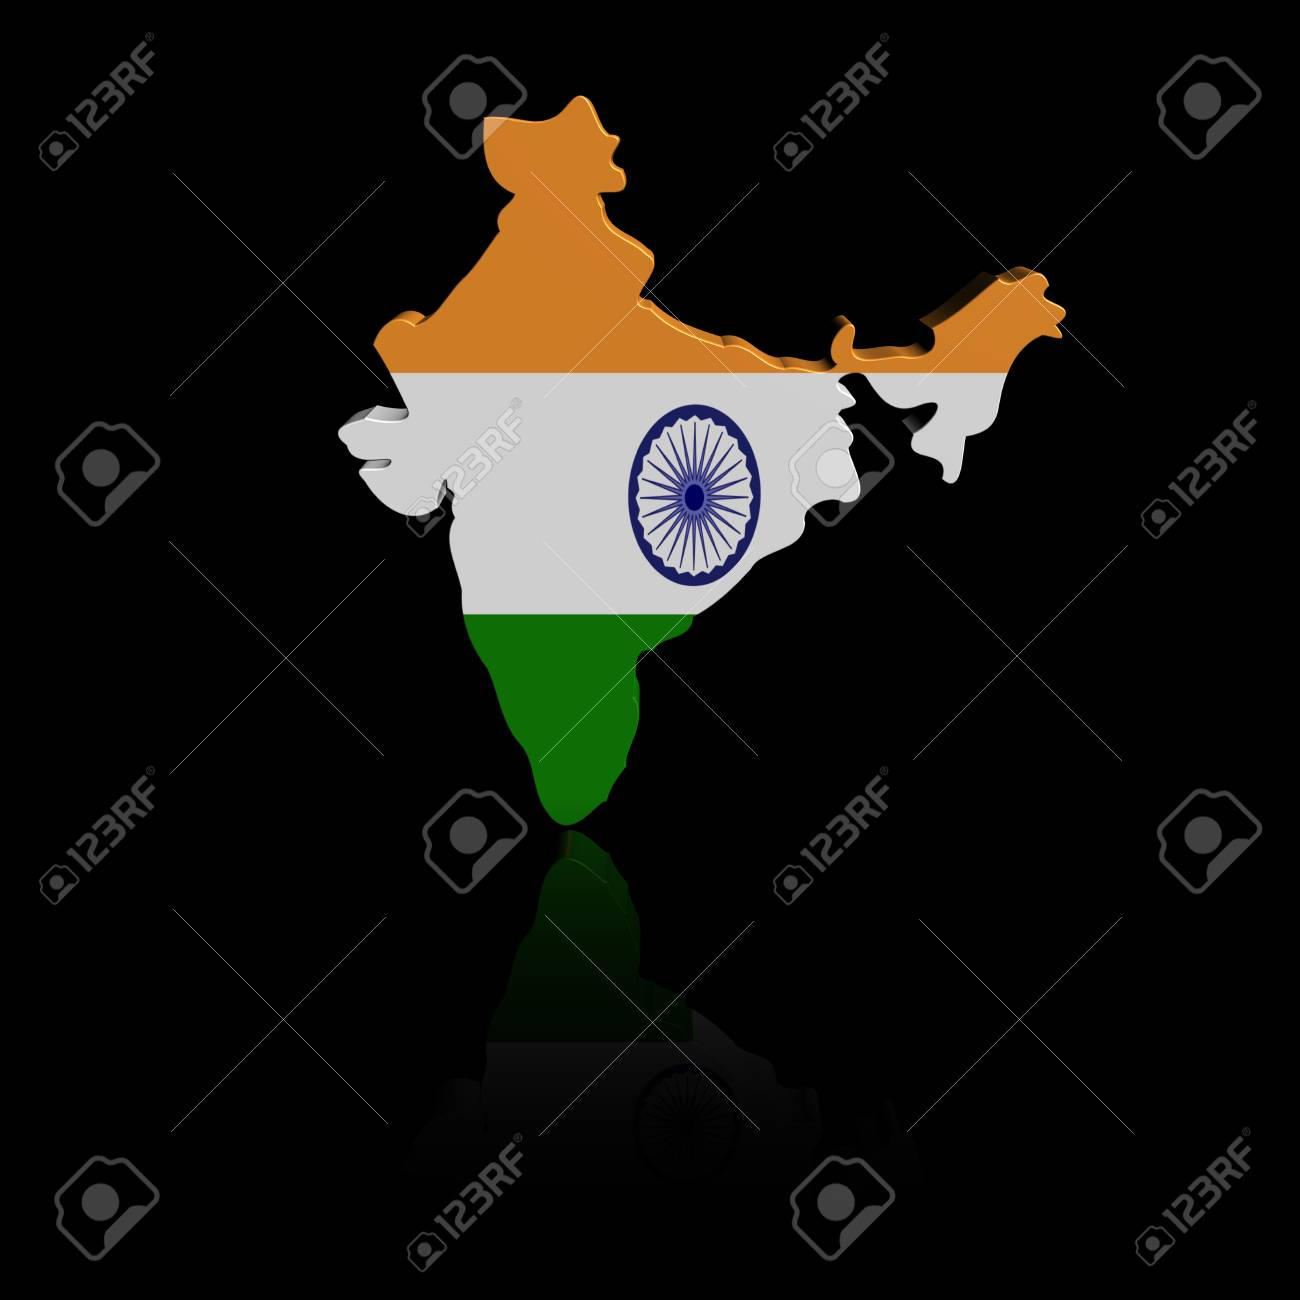 India Map Flag.India Map Flag With Reflection Illustration Stock Photo Picture And